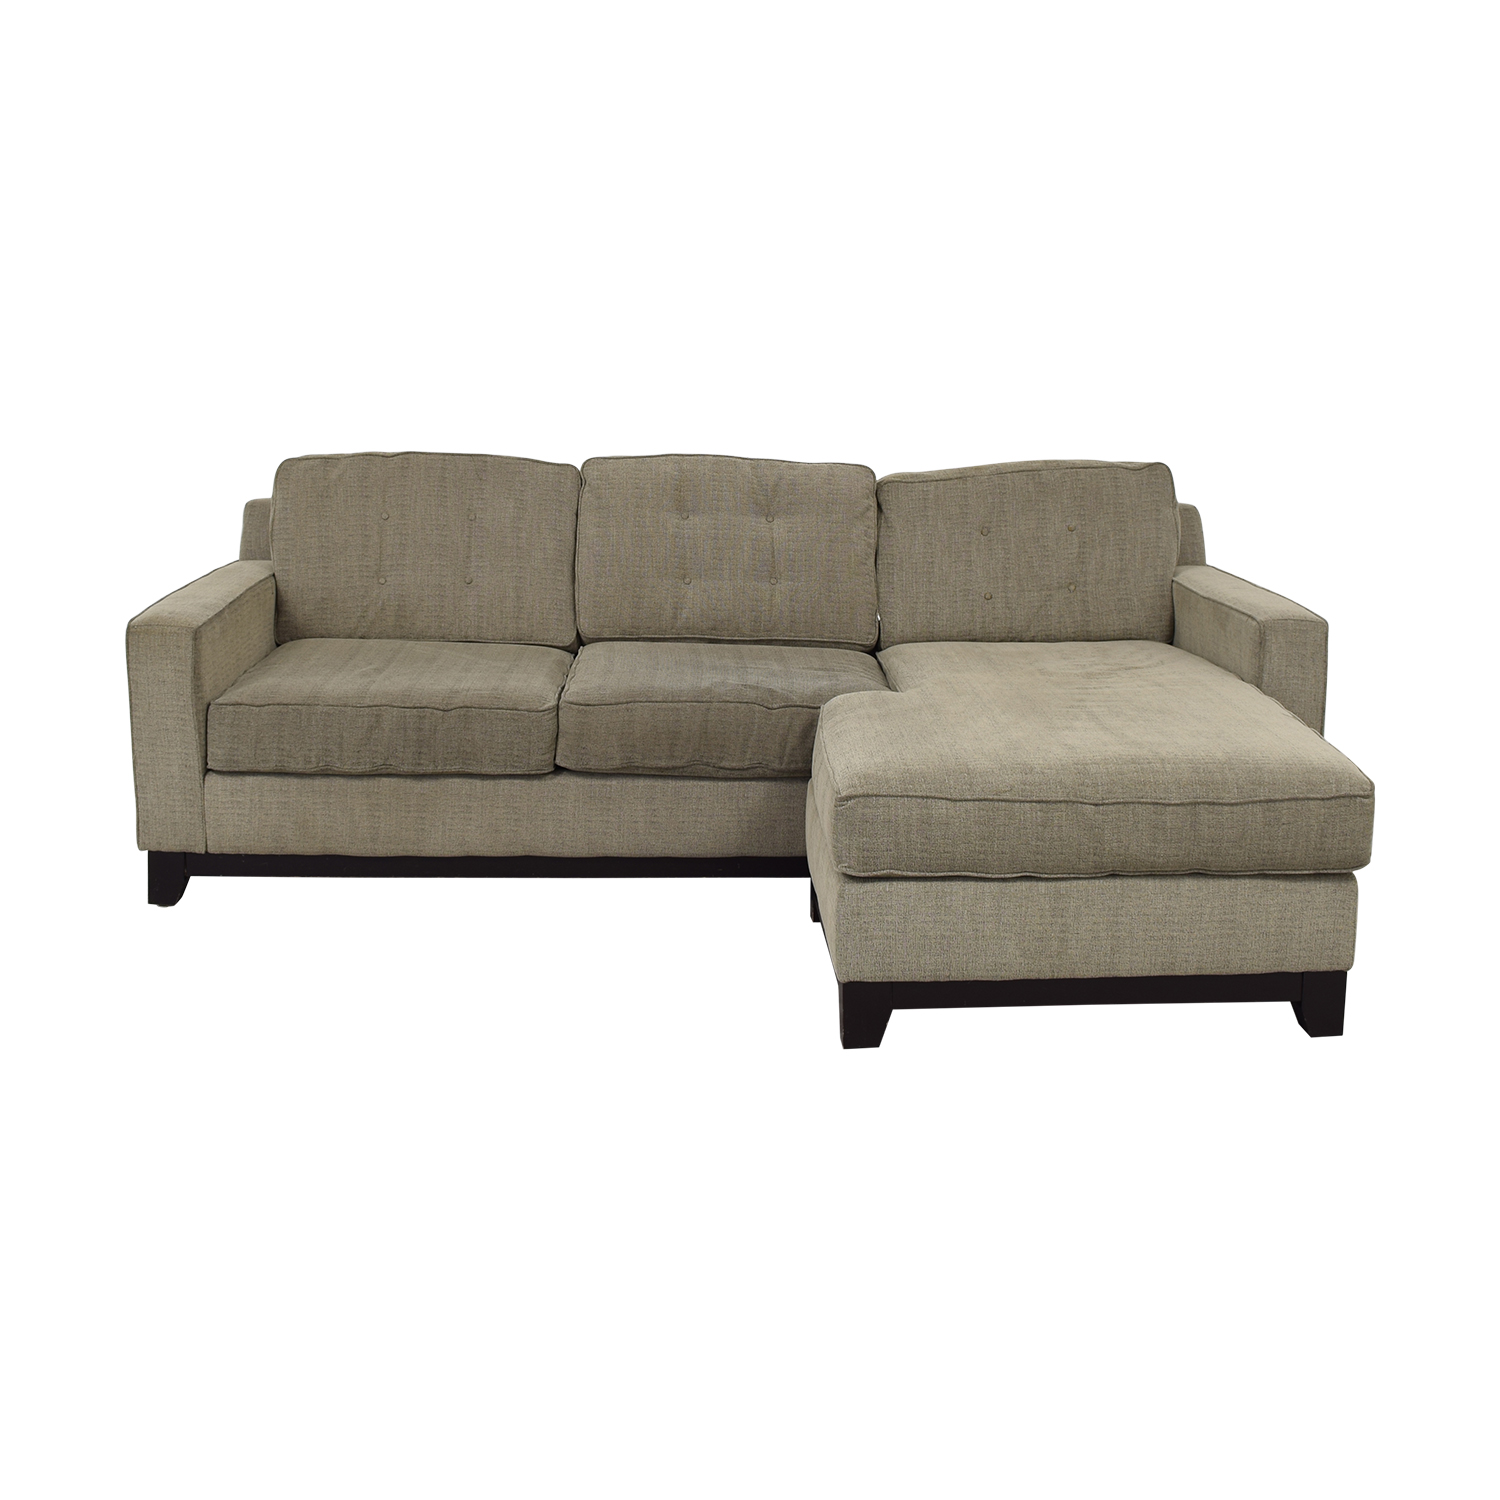 Macy's Macy's Grey Tufted Chaise Sectional nyc